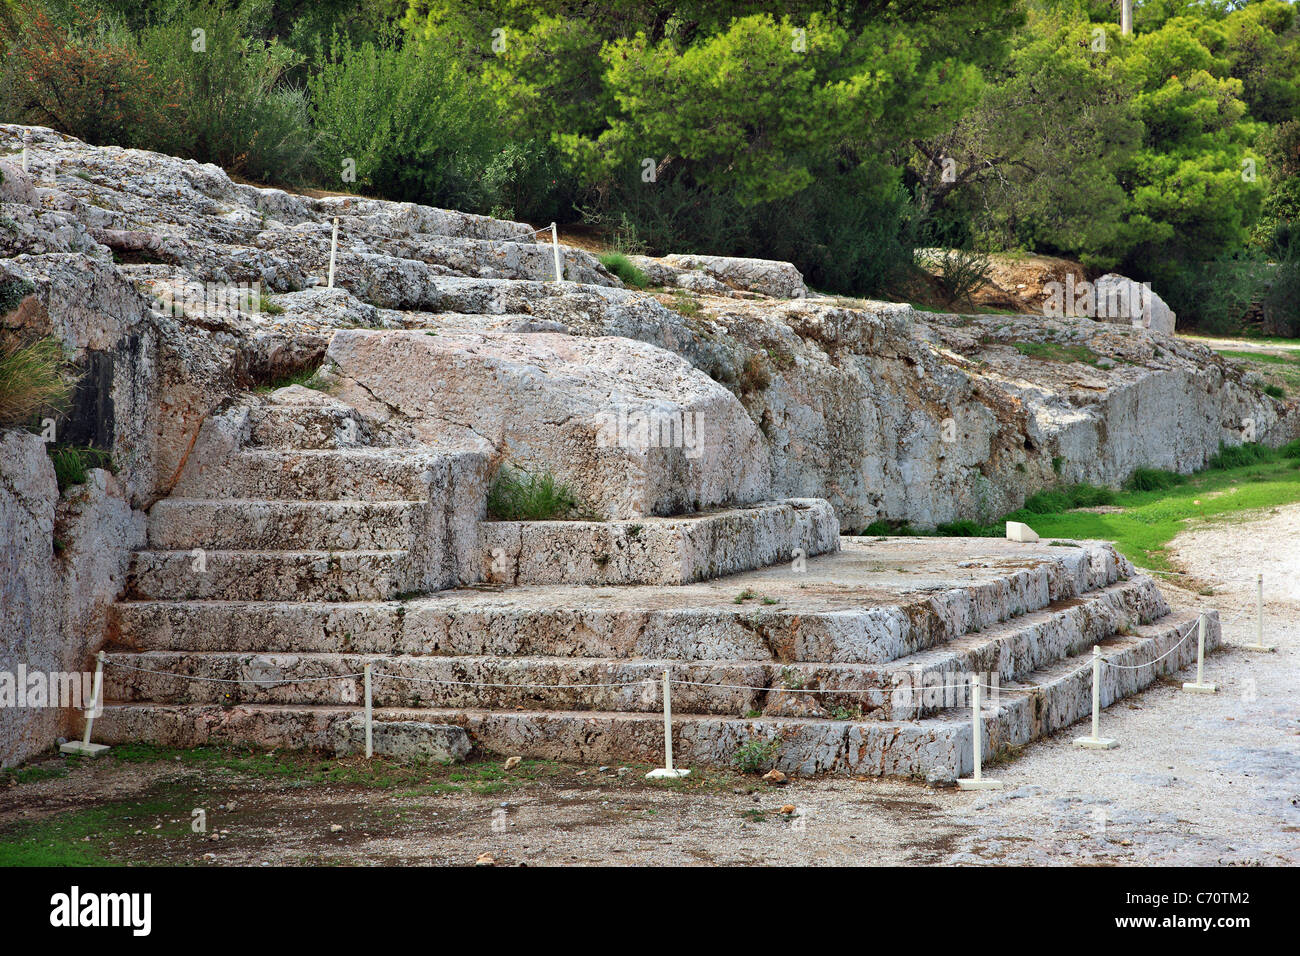 The 'Bema' or 'Vema' of Pnyx, where popular assemblies were taking place in Ancient Athens, Greece. - Stock Image